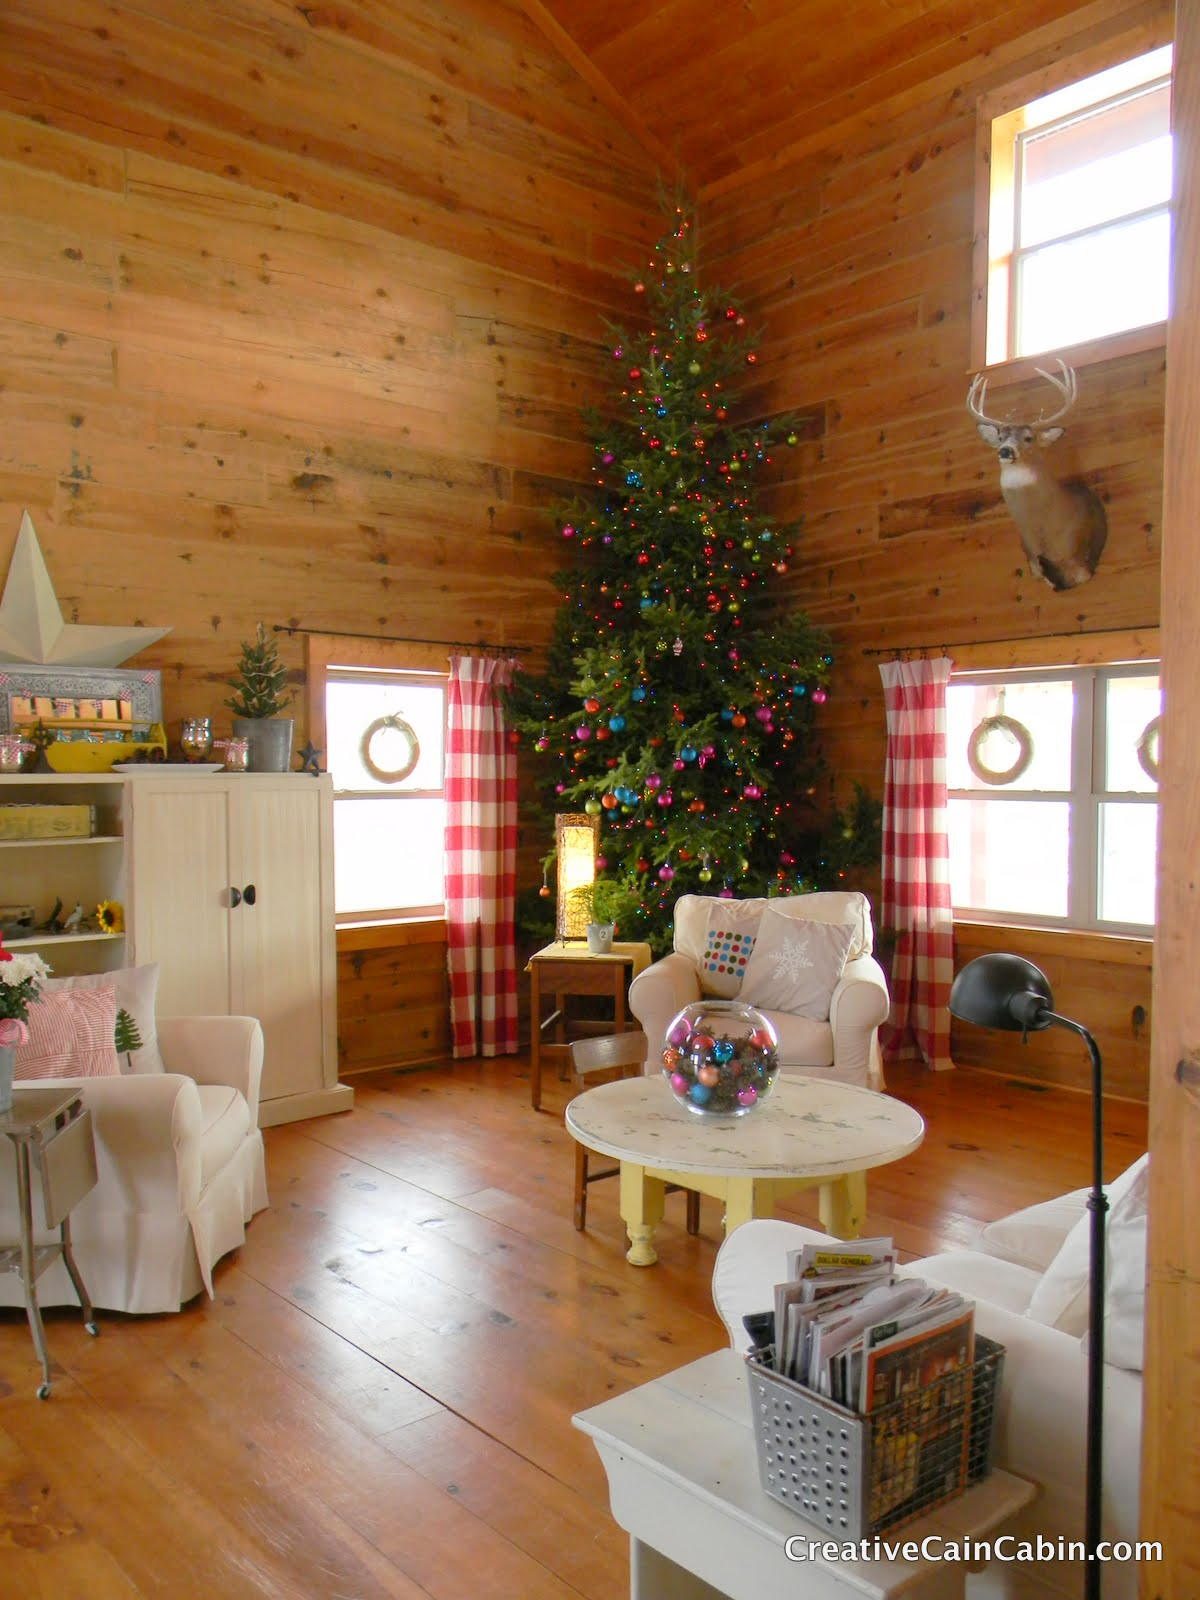 christmas tree in a log home creative cain cabin - Cabins Decorated For Christmas